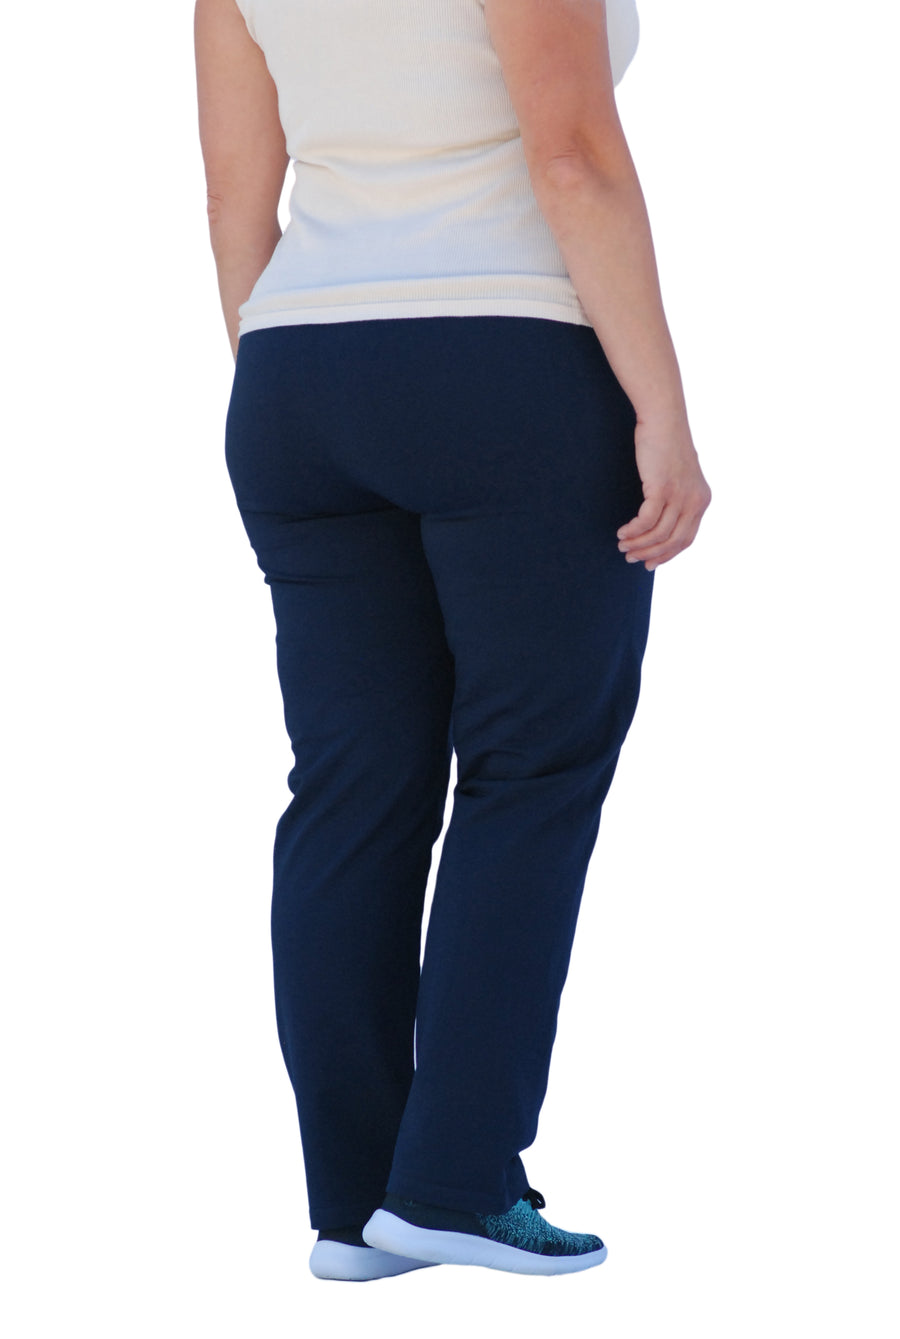 Women's Athletic-Casual ALL DAY COMFORT PANT-(Women's Plus size)